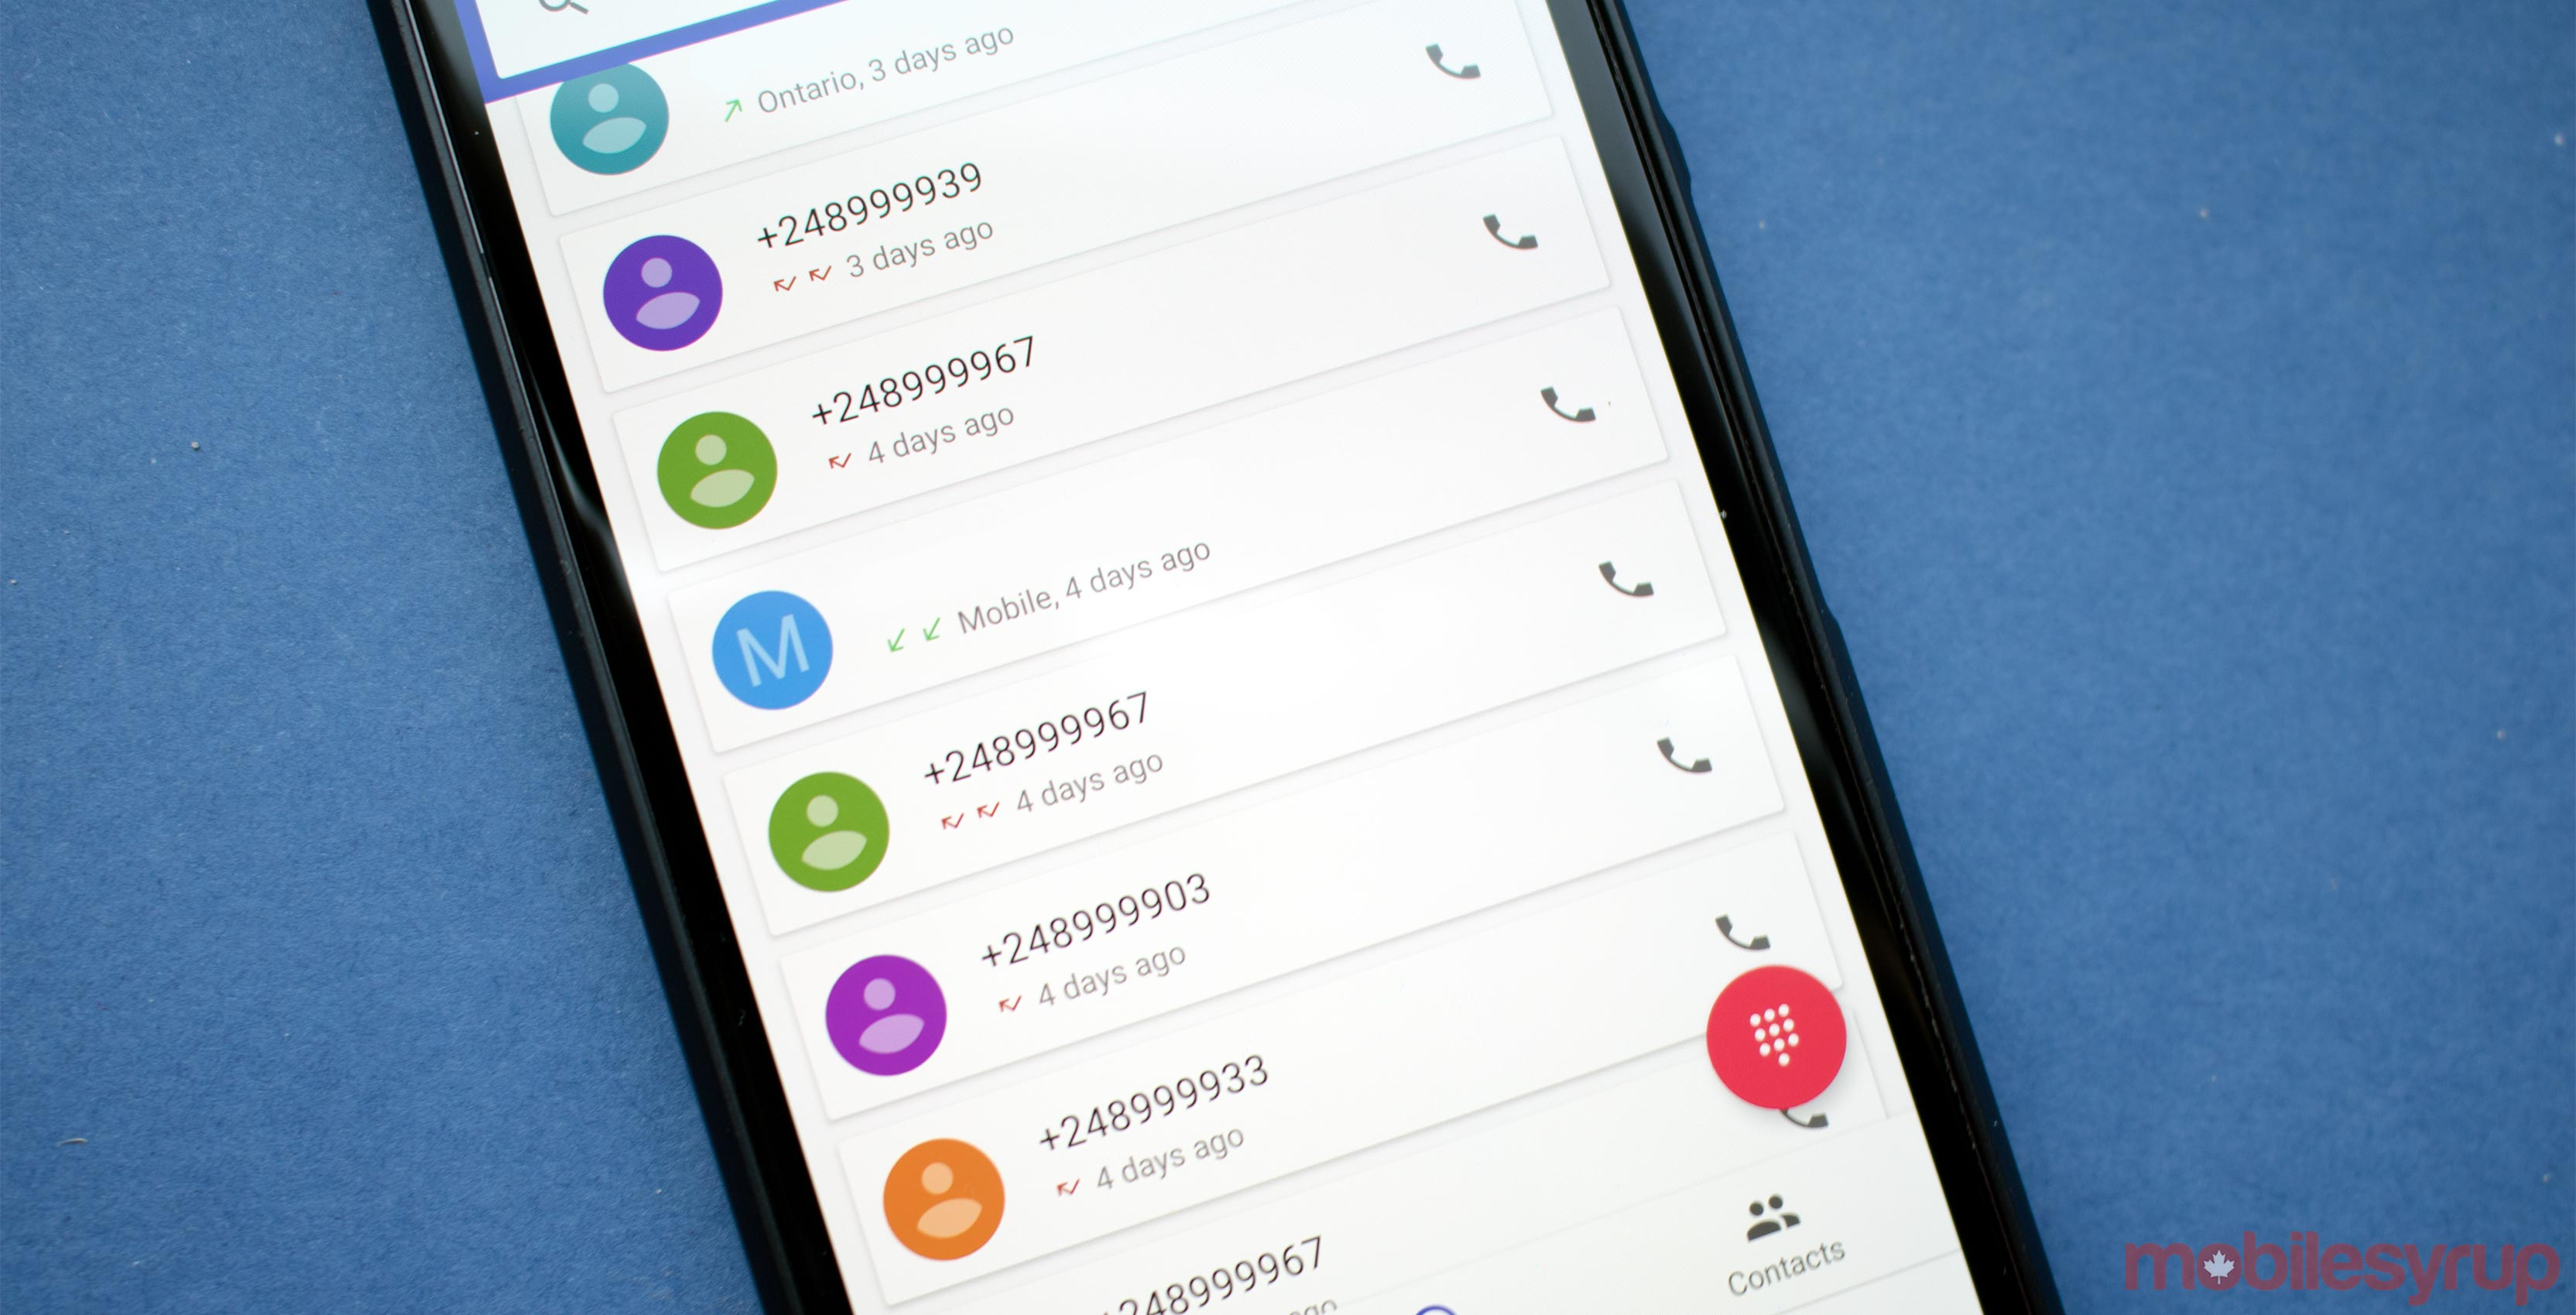 How to block specific area and country codes on Android